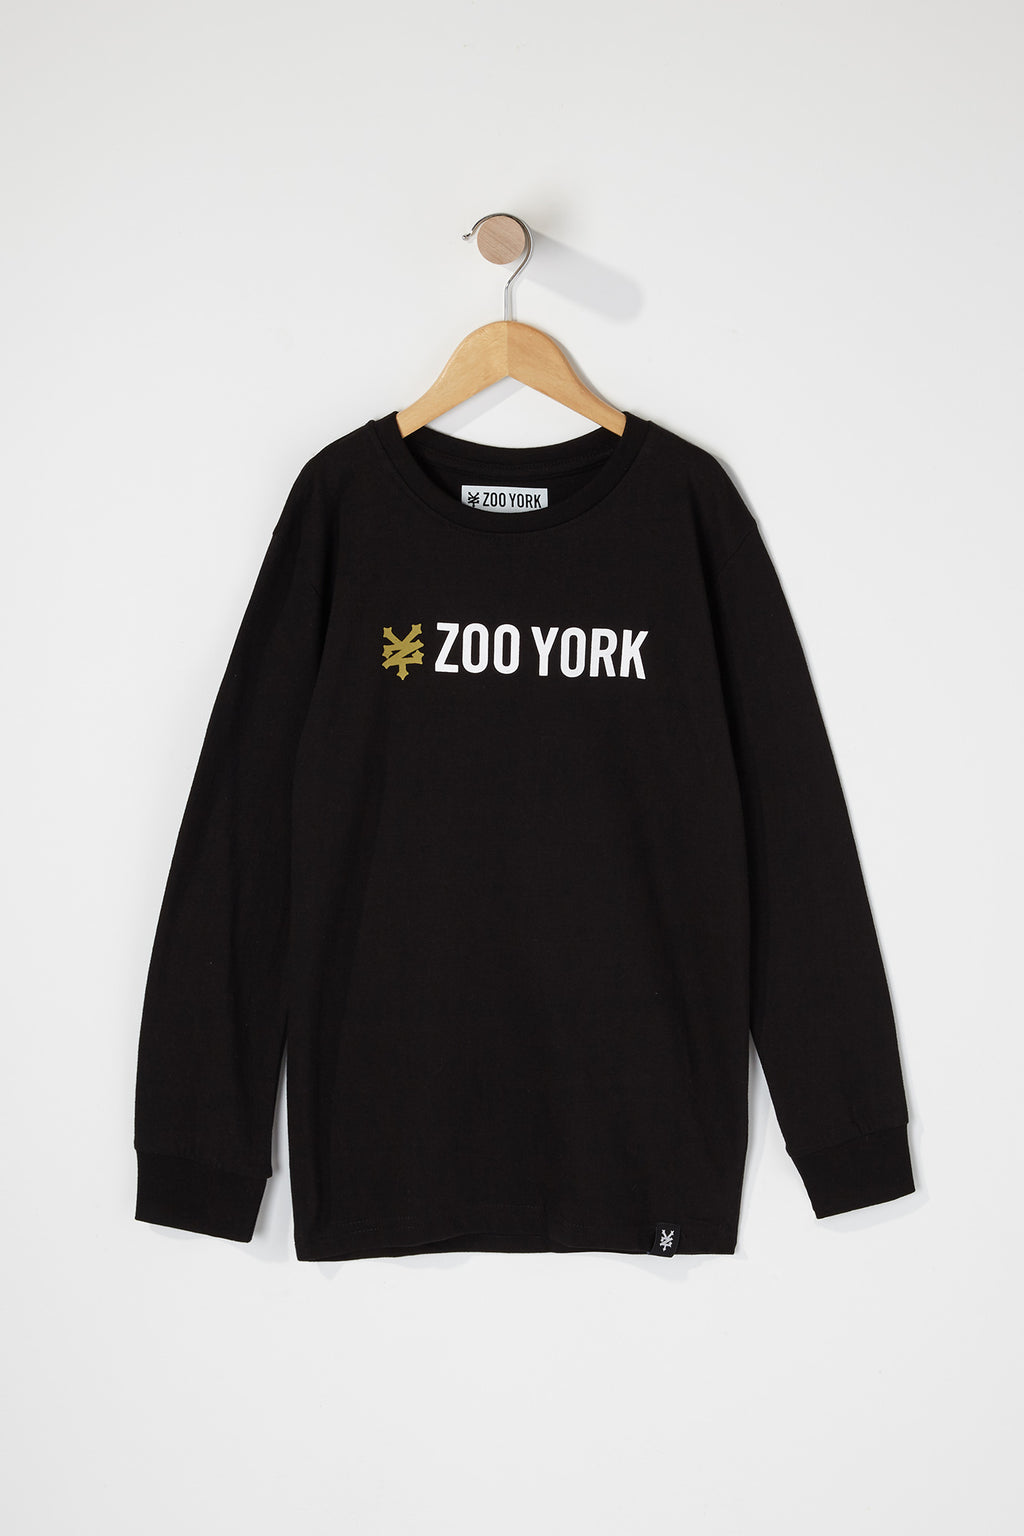 Zoo York Boys Black Box Logo Long Sleeve T-Shirt